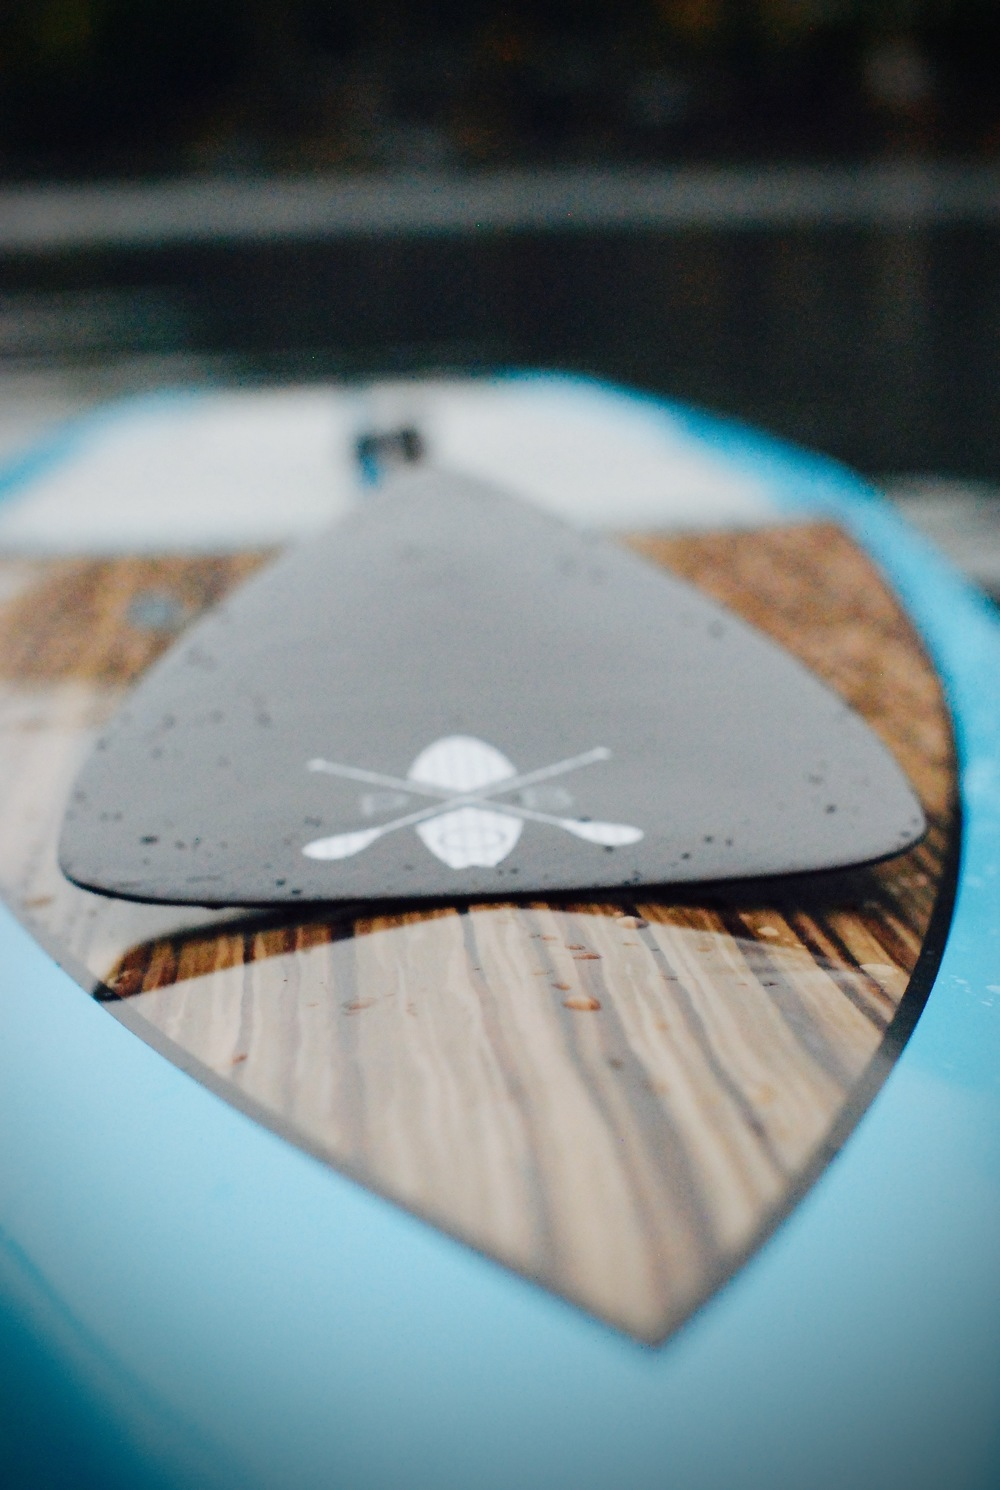 www.paddleboardoutfitters.org/store